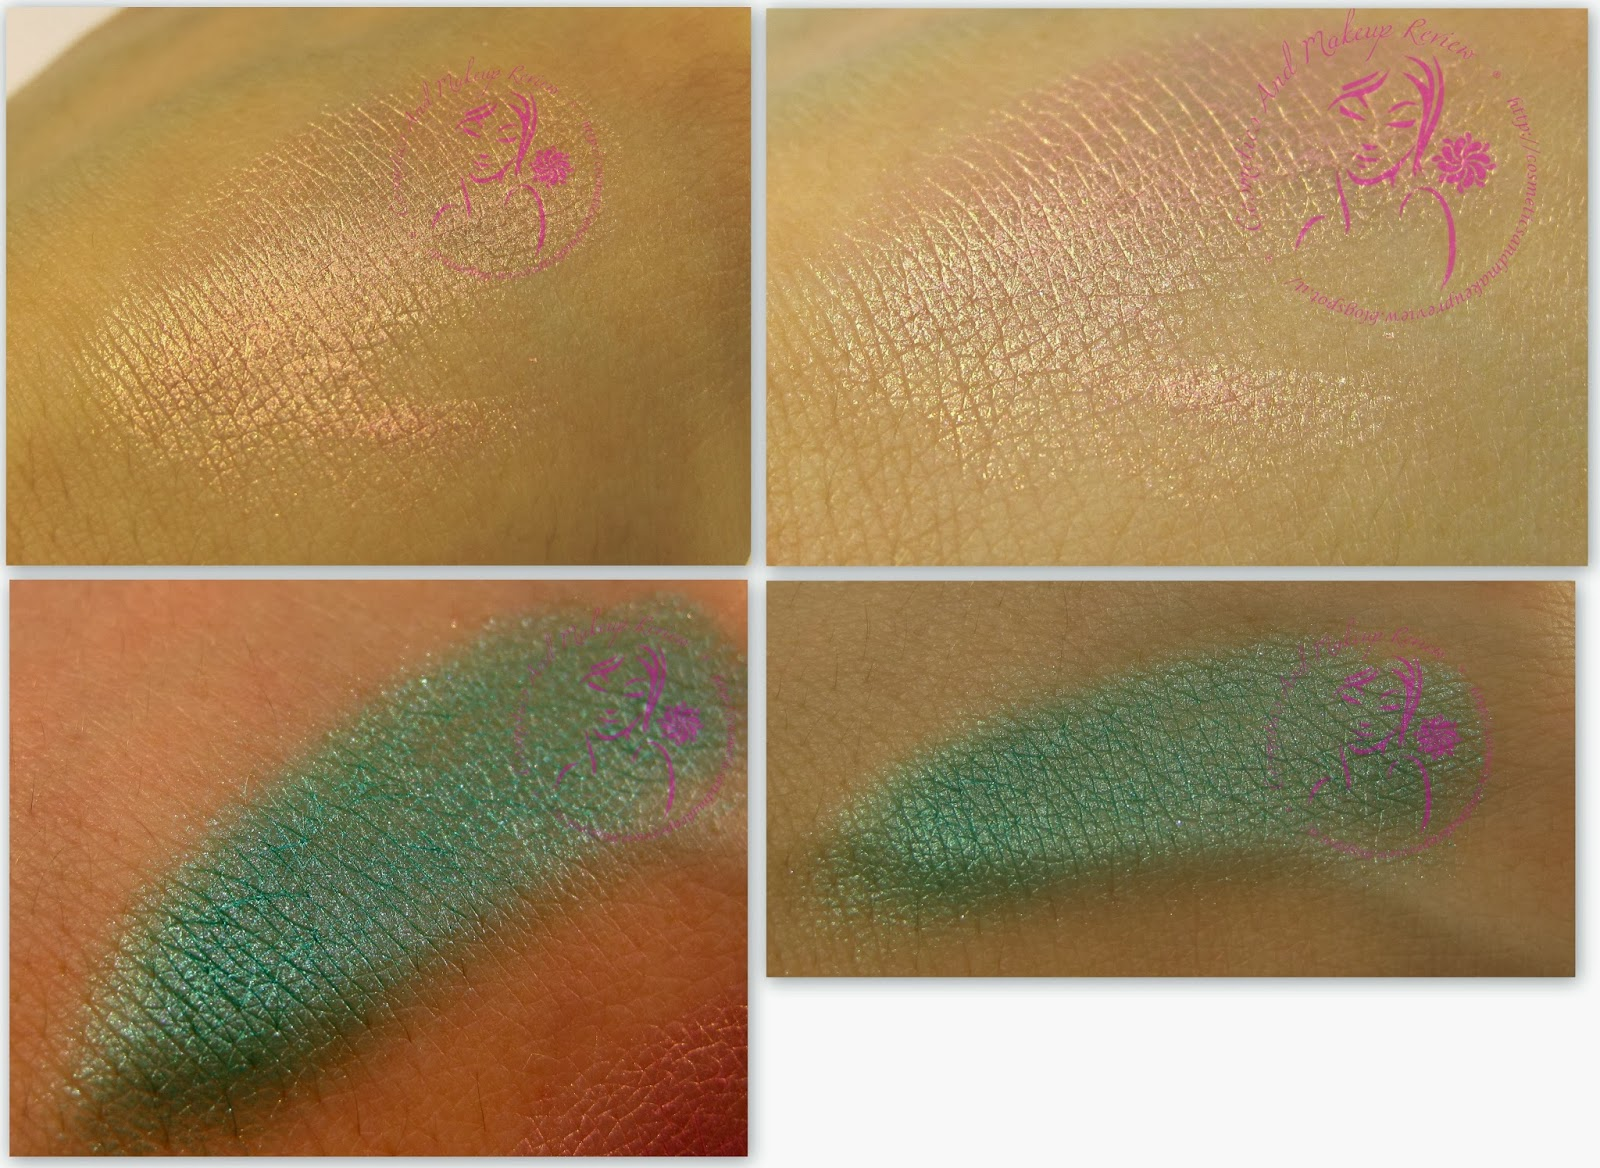 Astra Soul Color Waterproof Eyeshadow n° 02 e 04 - swatches